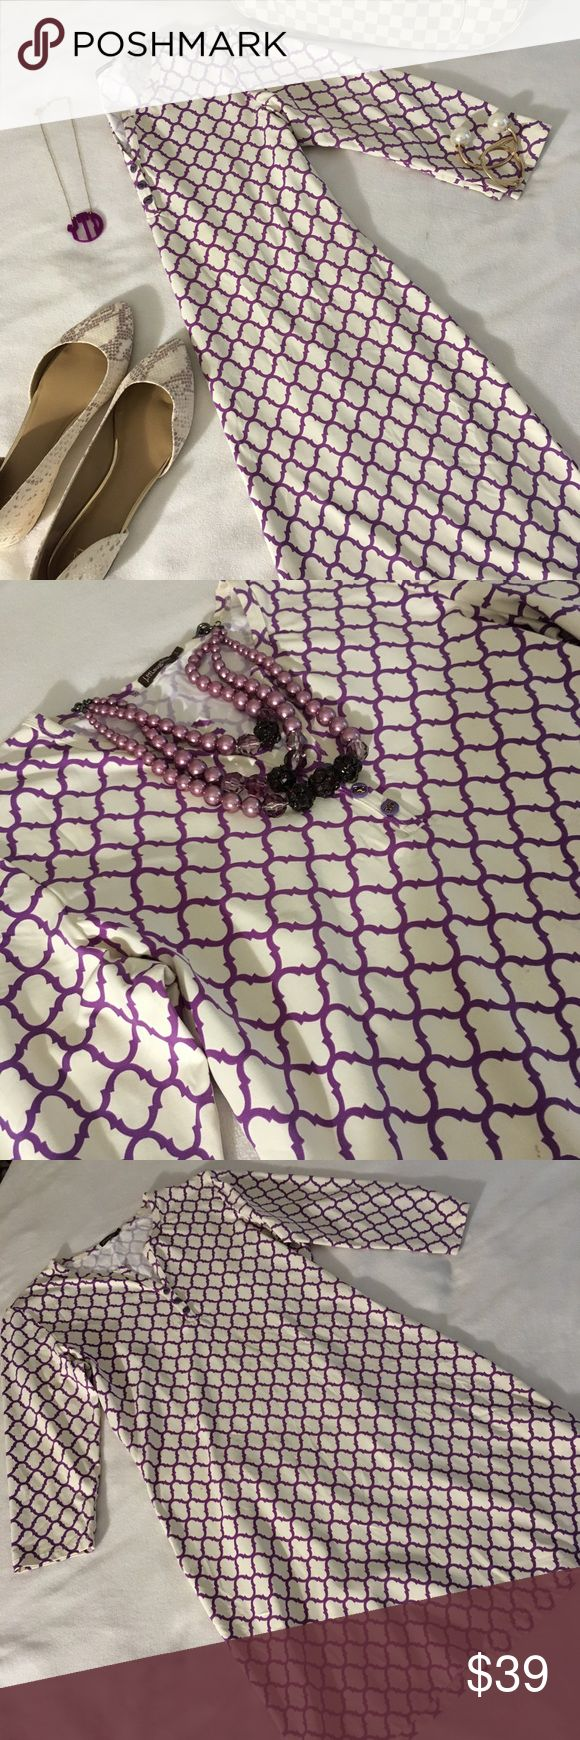 J. McLaughlin Purple and Cream & Purple Tile Dress J. McLaughlin Purple and Cream & Purple Tile Print Dress In excellent used condition. J. McLaughlin Dresses